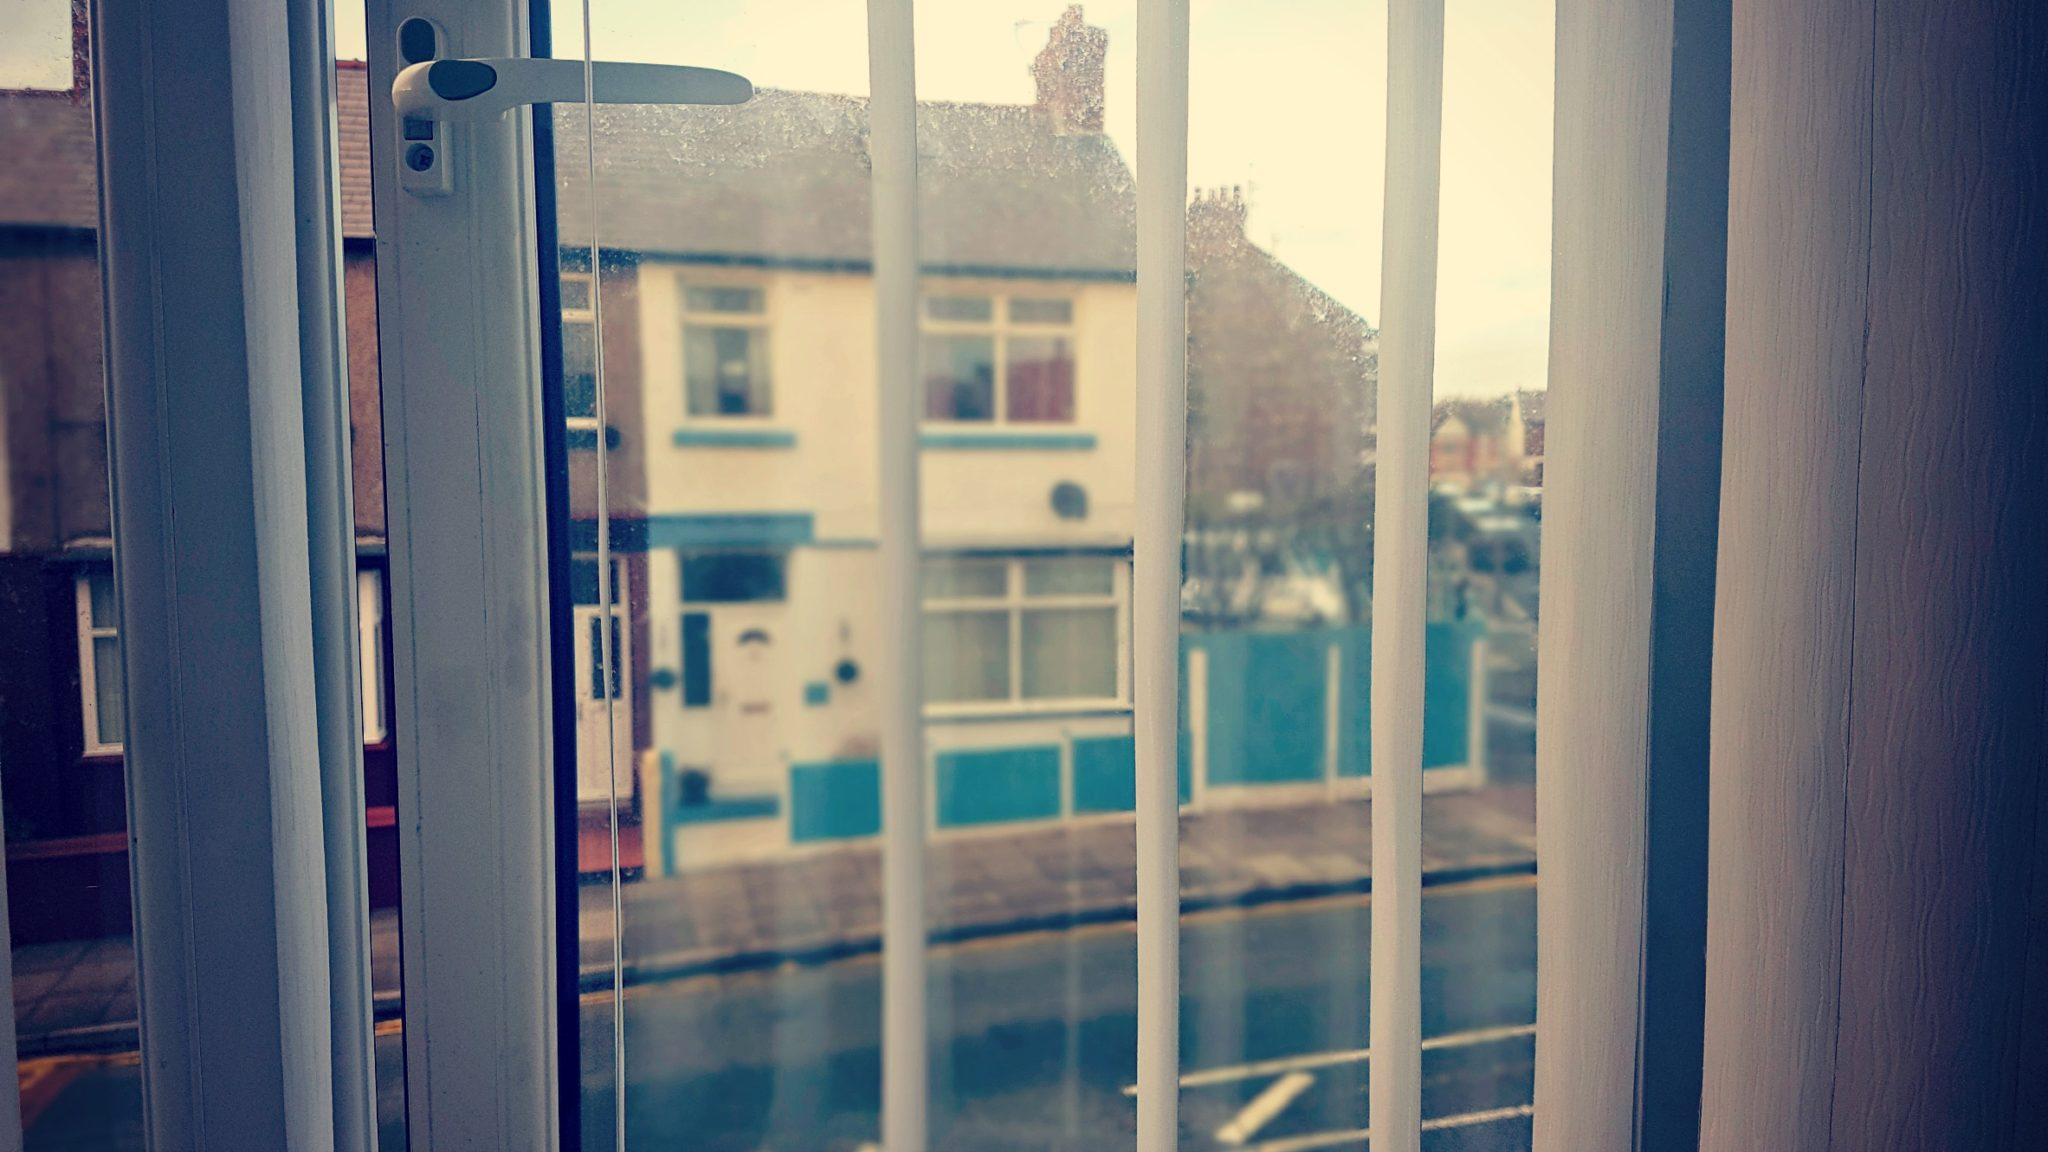 a view through an open double glazed window with blind slats open